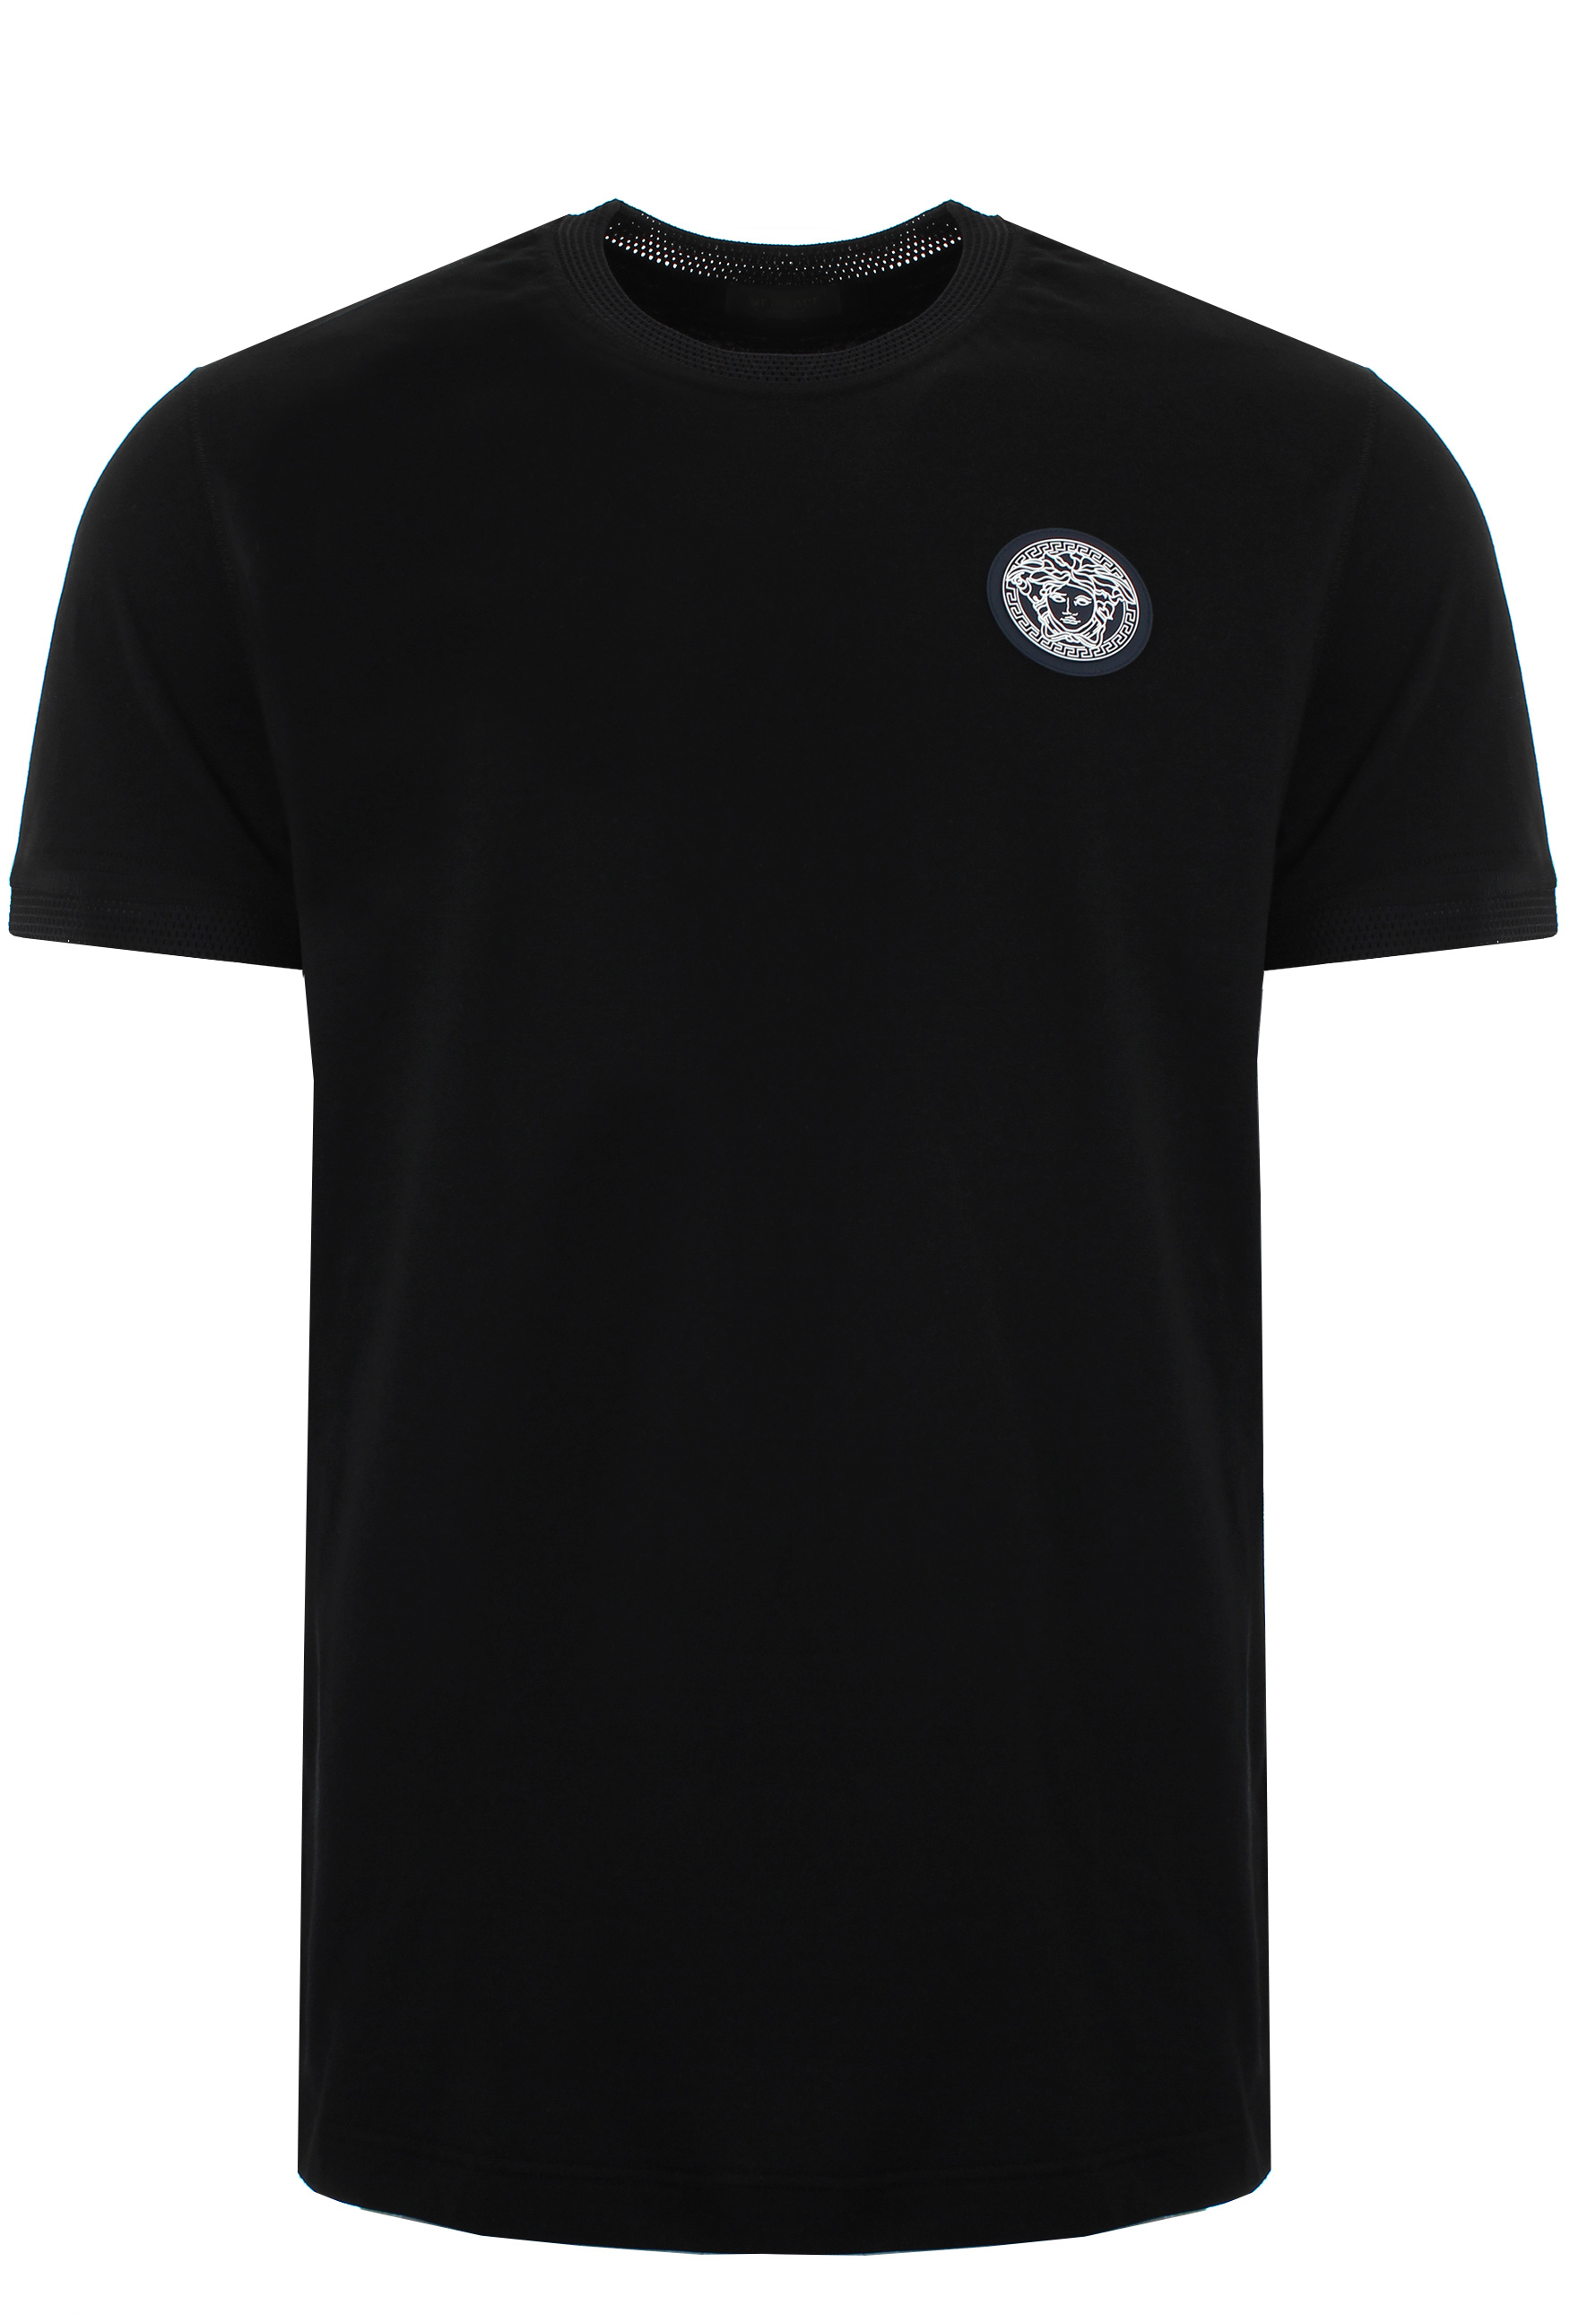 Versace Medusa Sports T-shirt Black in Black for Men | Lyst